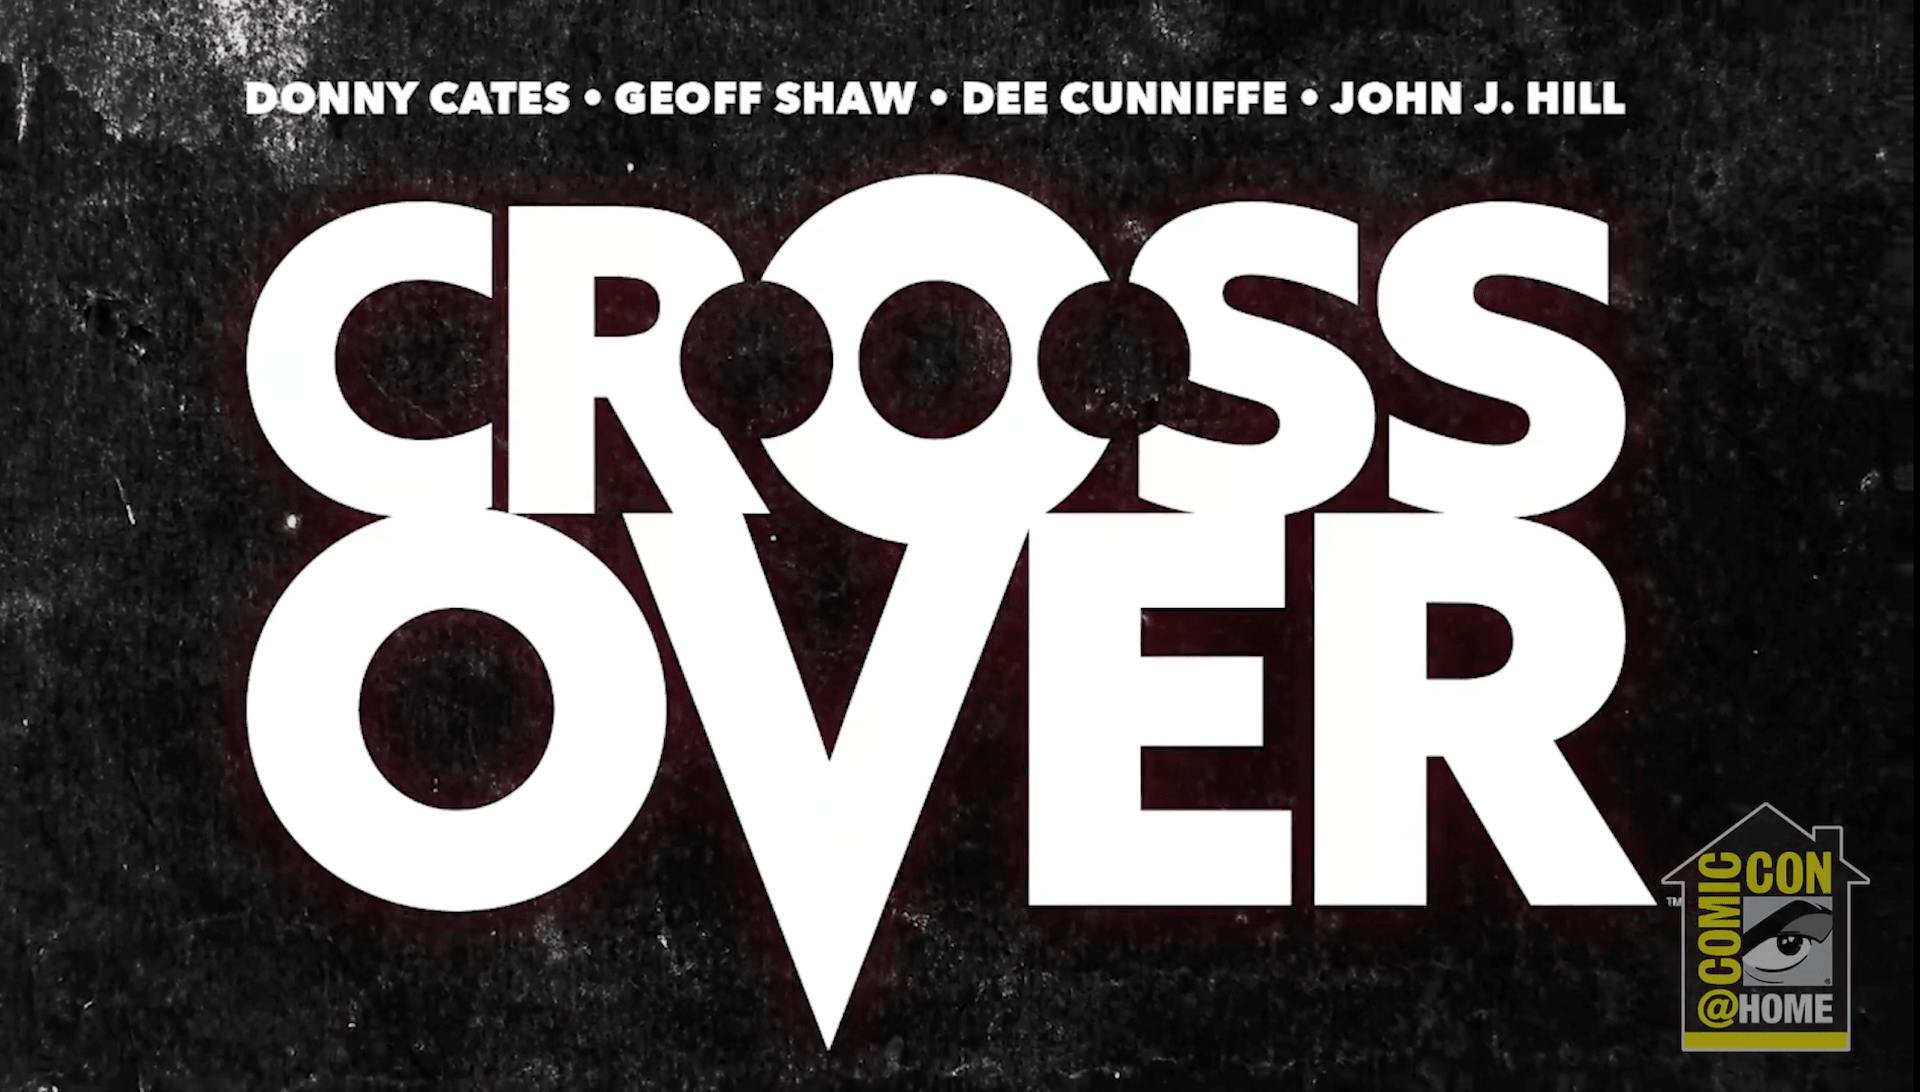 Donny Cates reveals details on upcoming series Crossover at Image Comics.